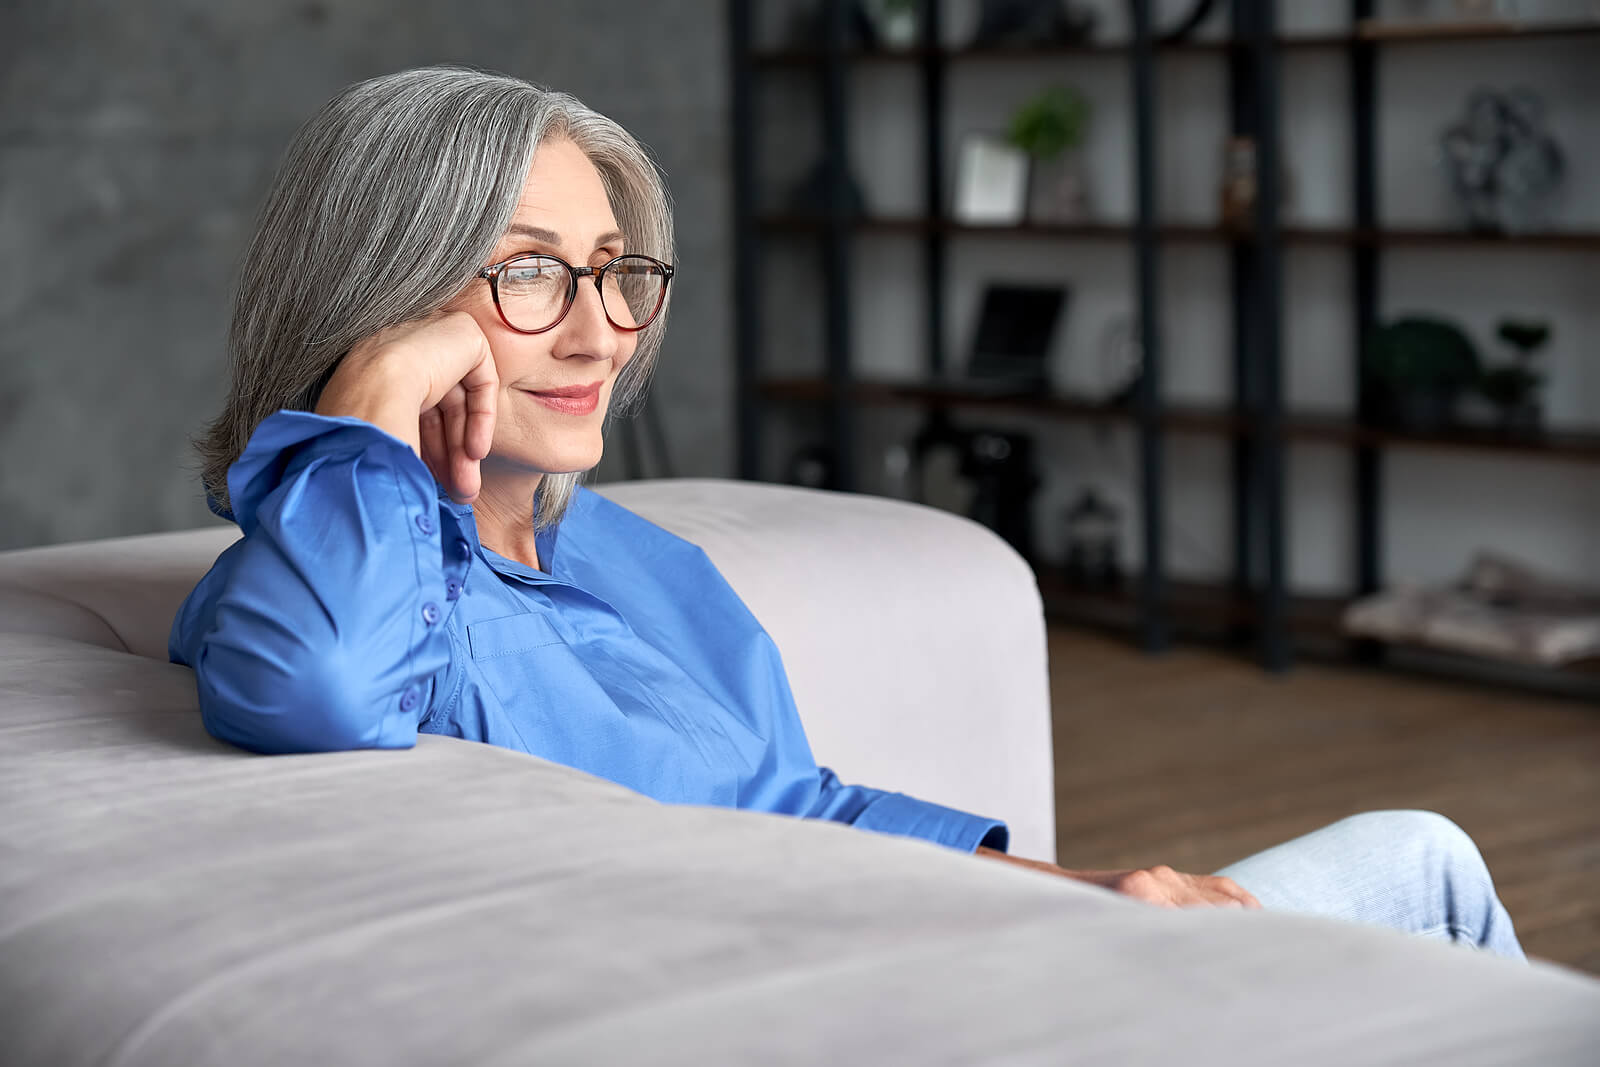 A mature white woman with grey hair sat on a sofa, wearing glasses and a blue top